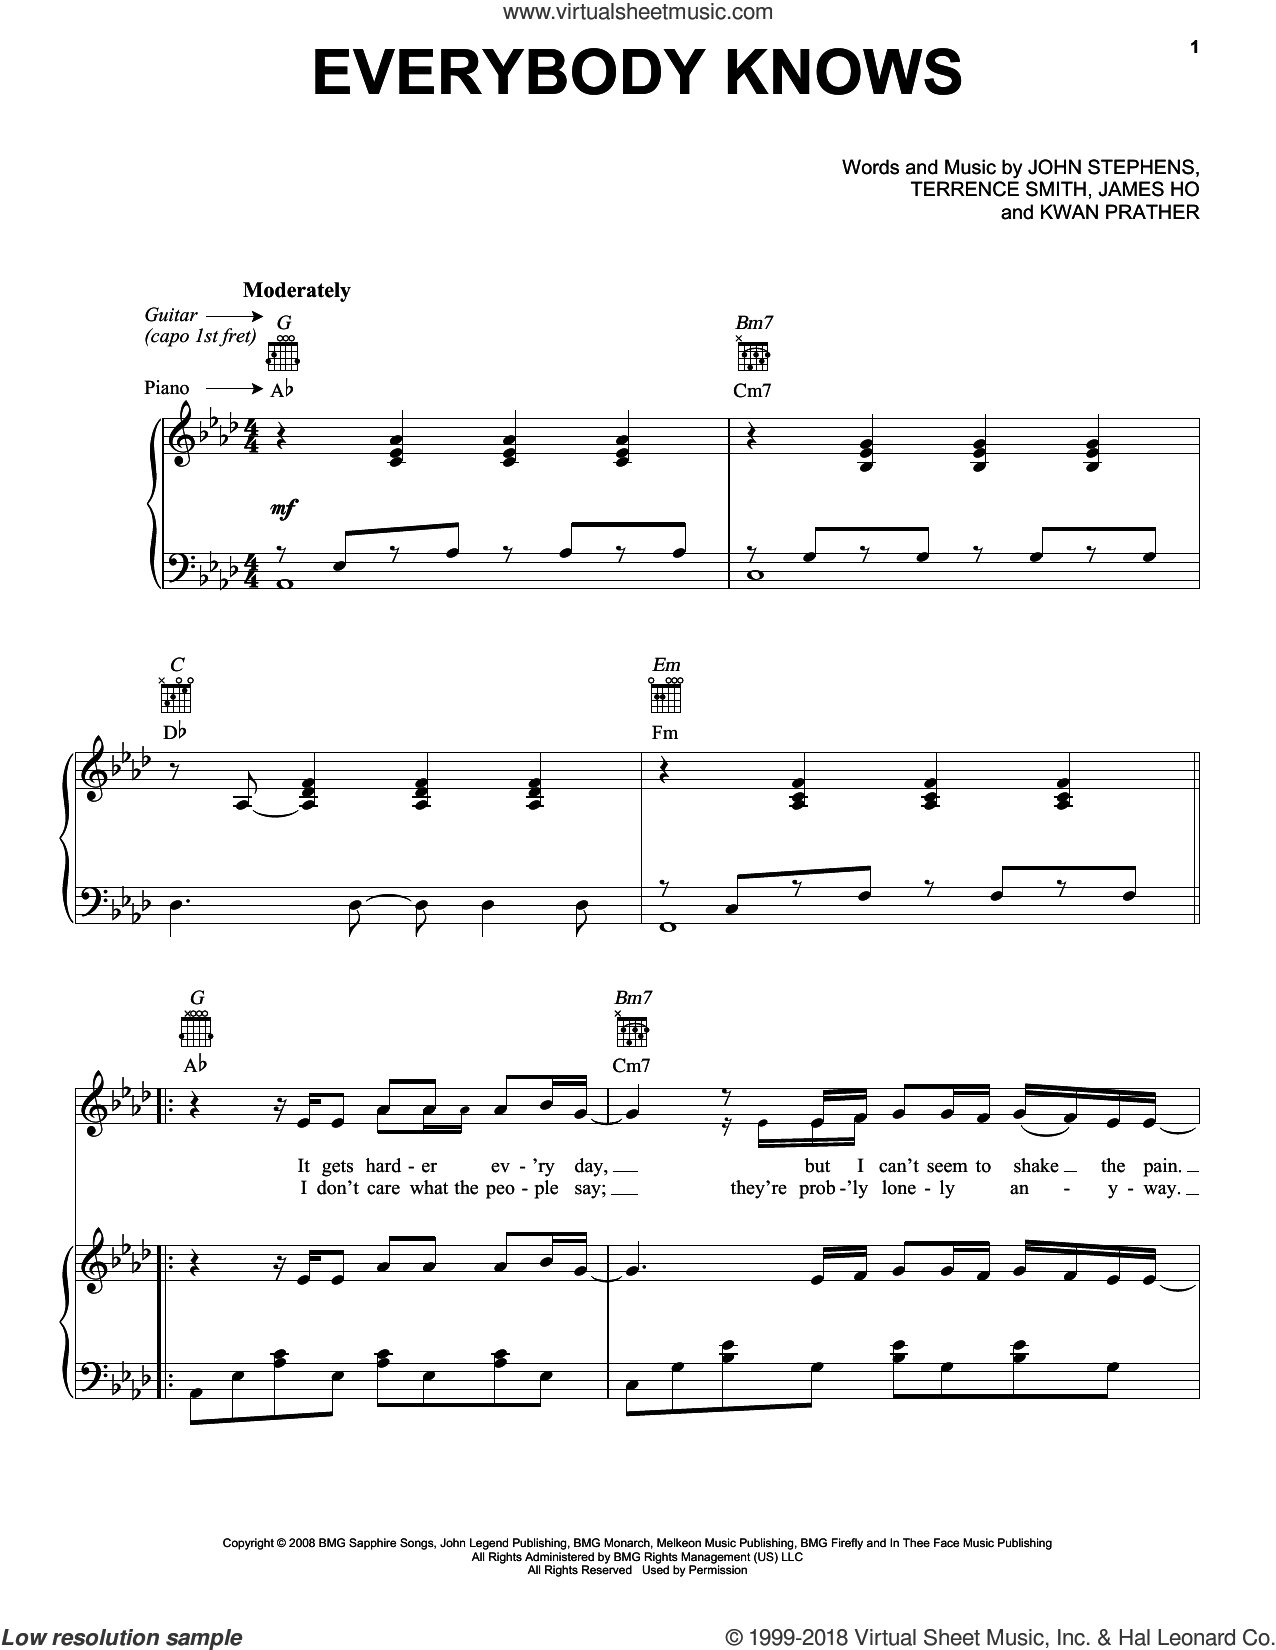 Everybody Knows sheet music for voice, piano or guitar by Terrence Smith, John Legend, James Ho, John Stephens and Kawan Prather. Score Image Preview.